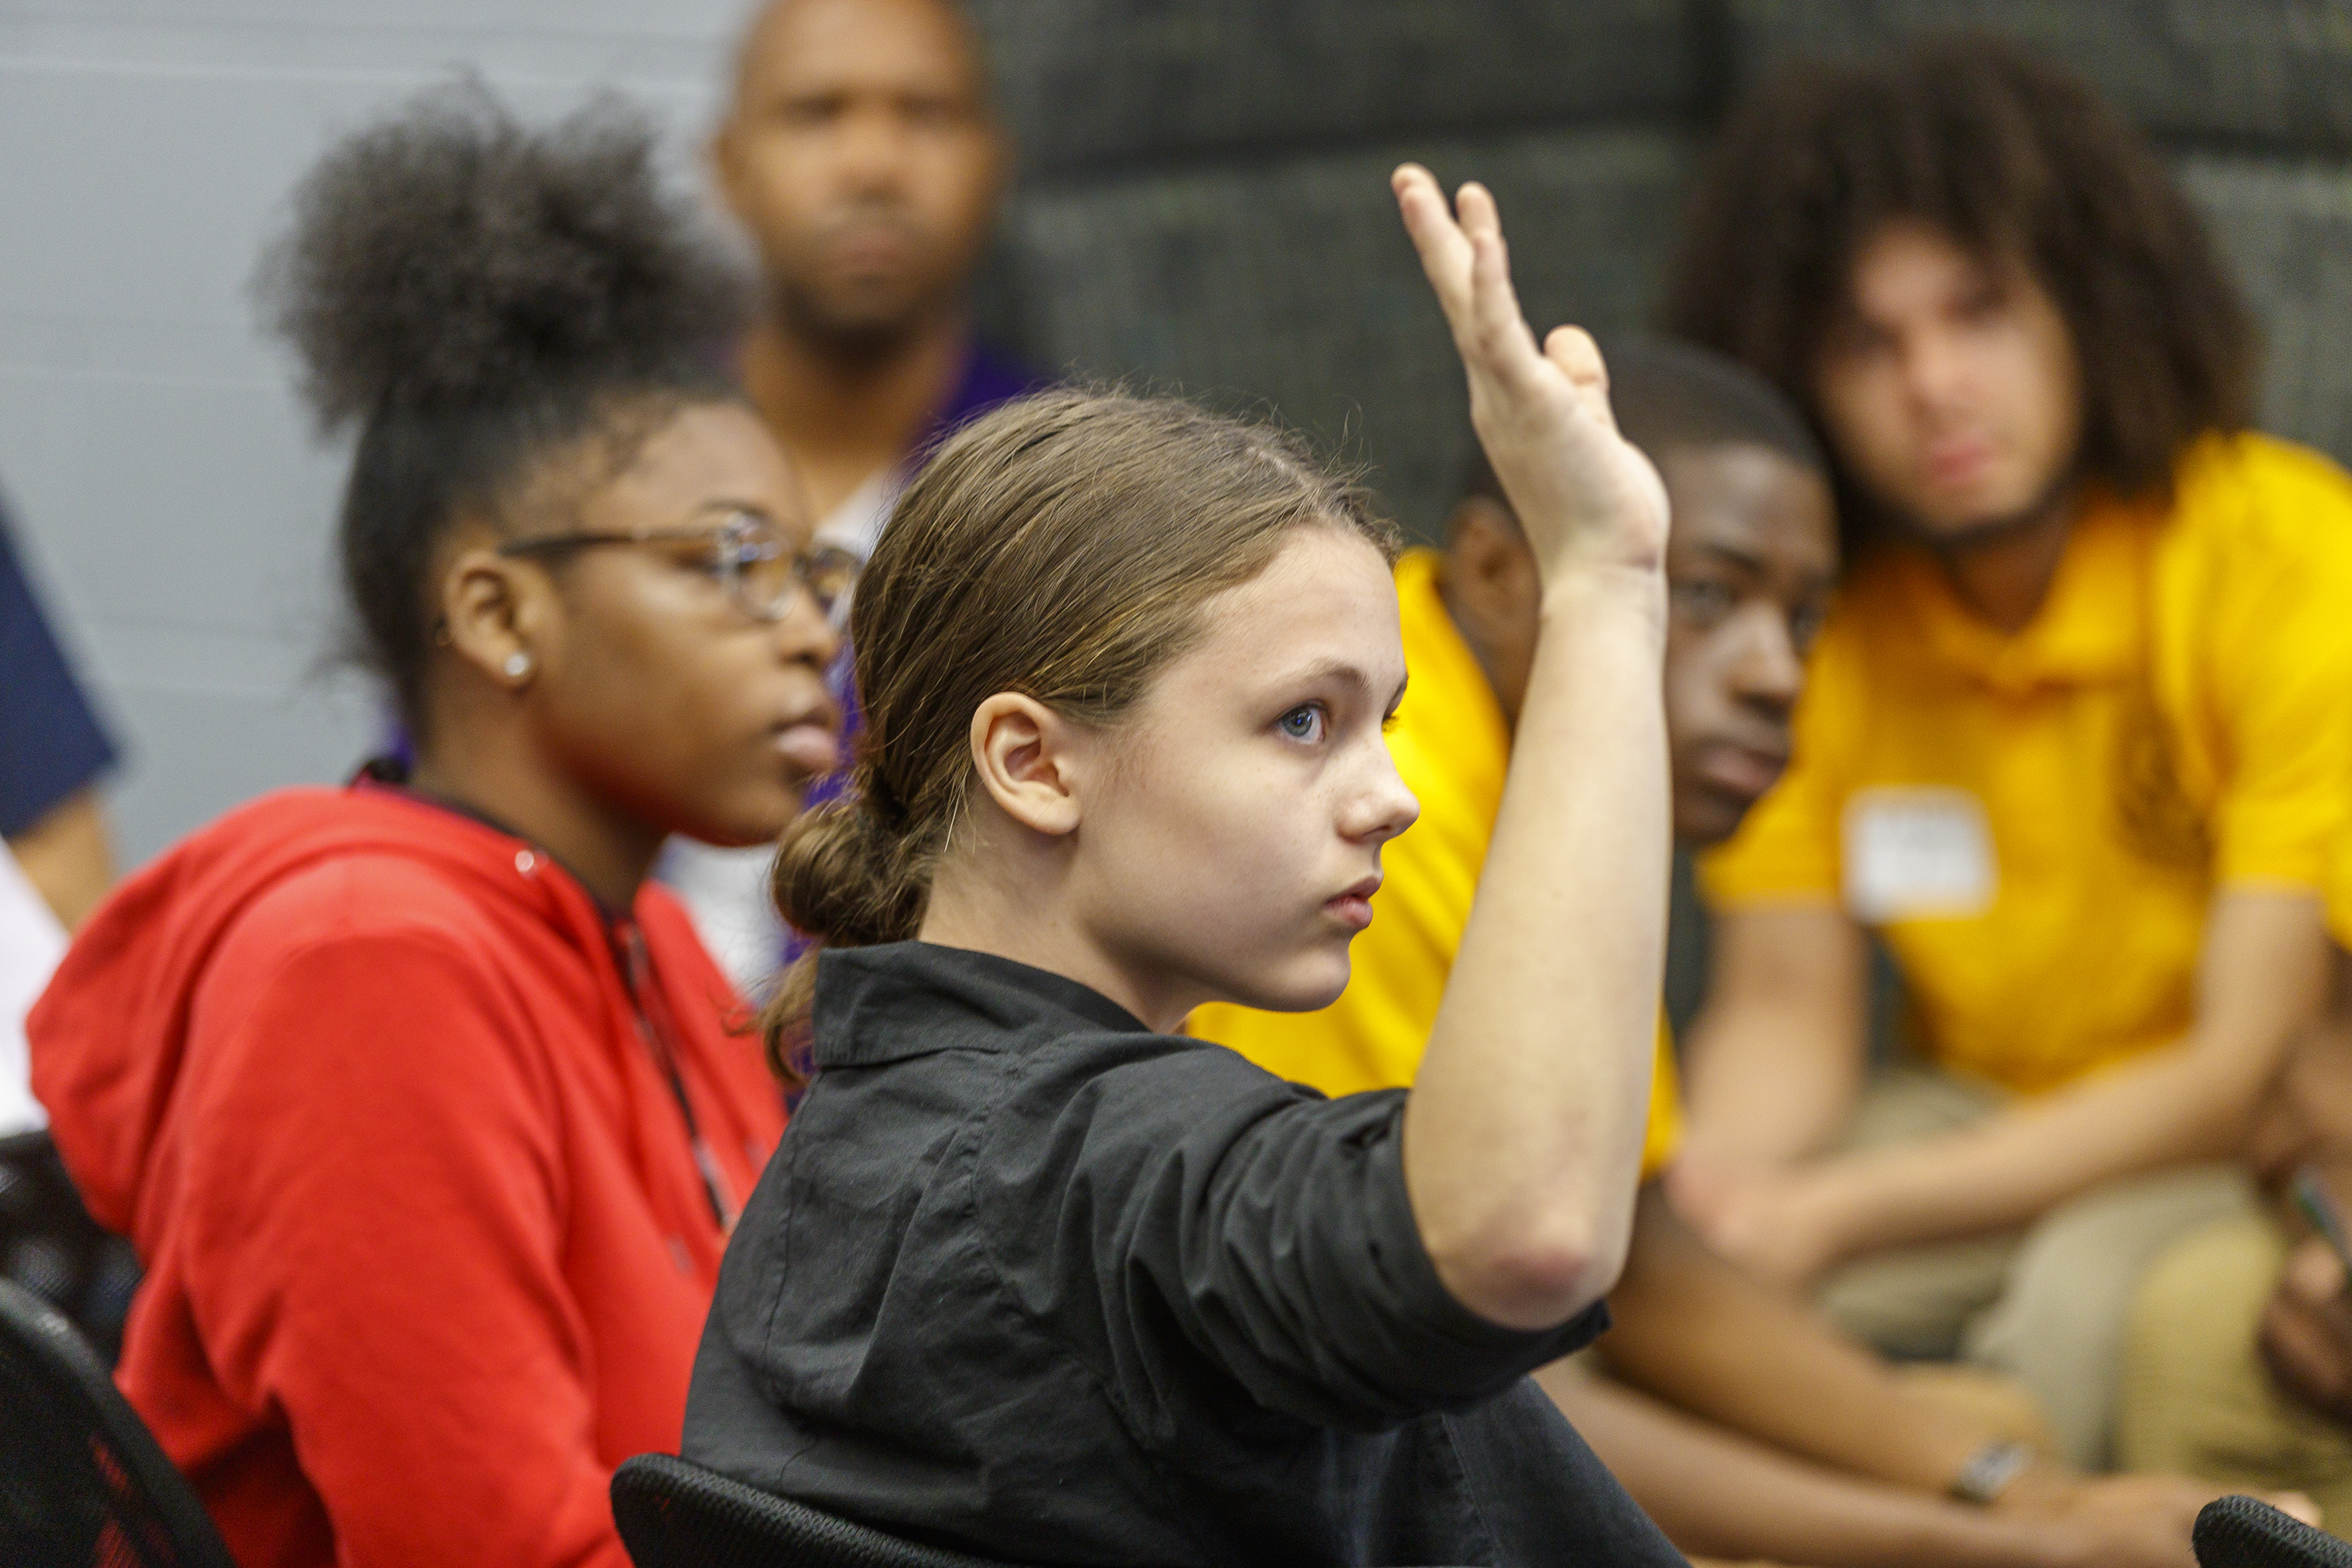 Sona Wink, 14, of Germantown Friends, raises a hand to be recognized durig a school gun violence forum at Parkway High School on Tuesday June 5, 2018.